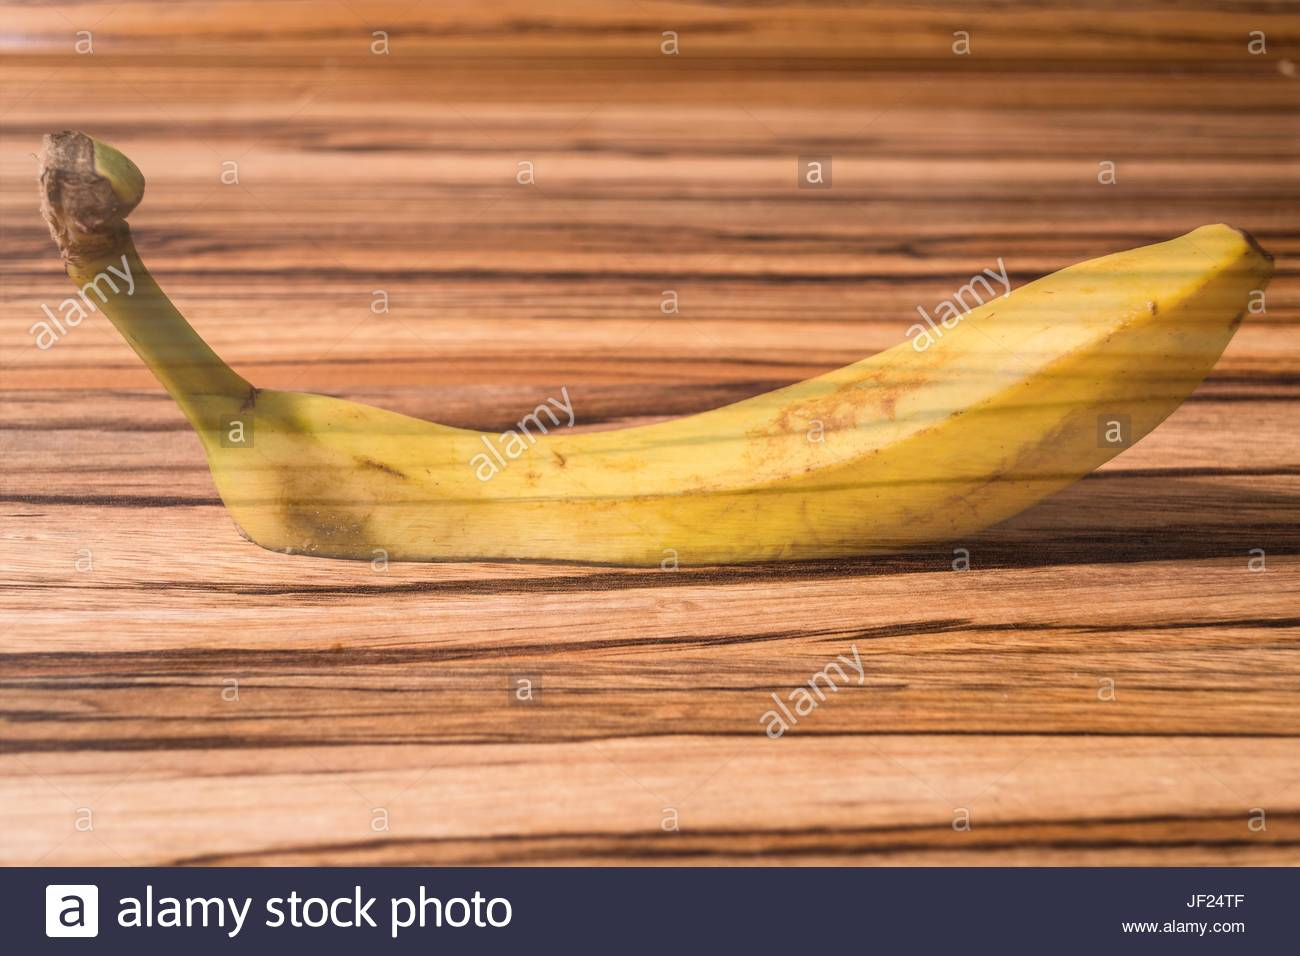 Transparency banana - Stock Image